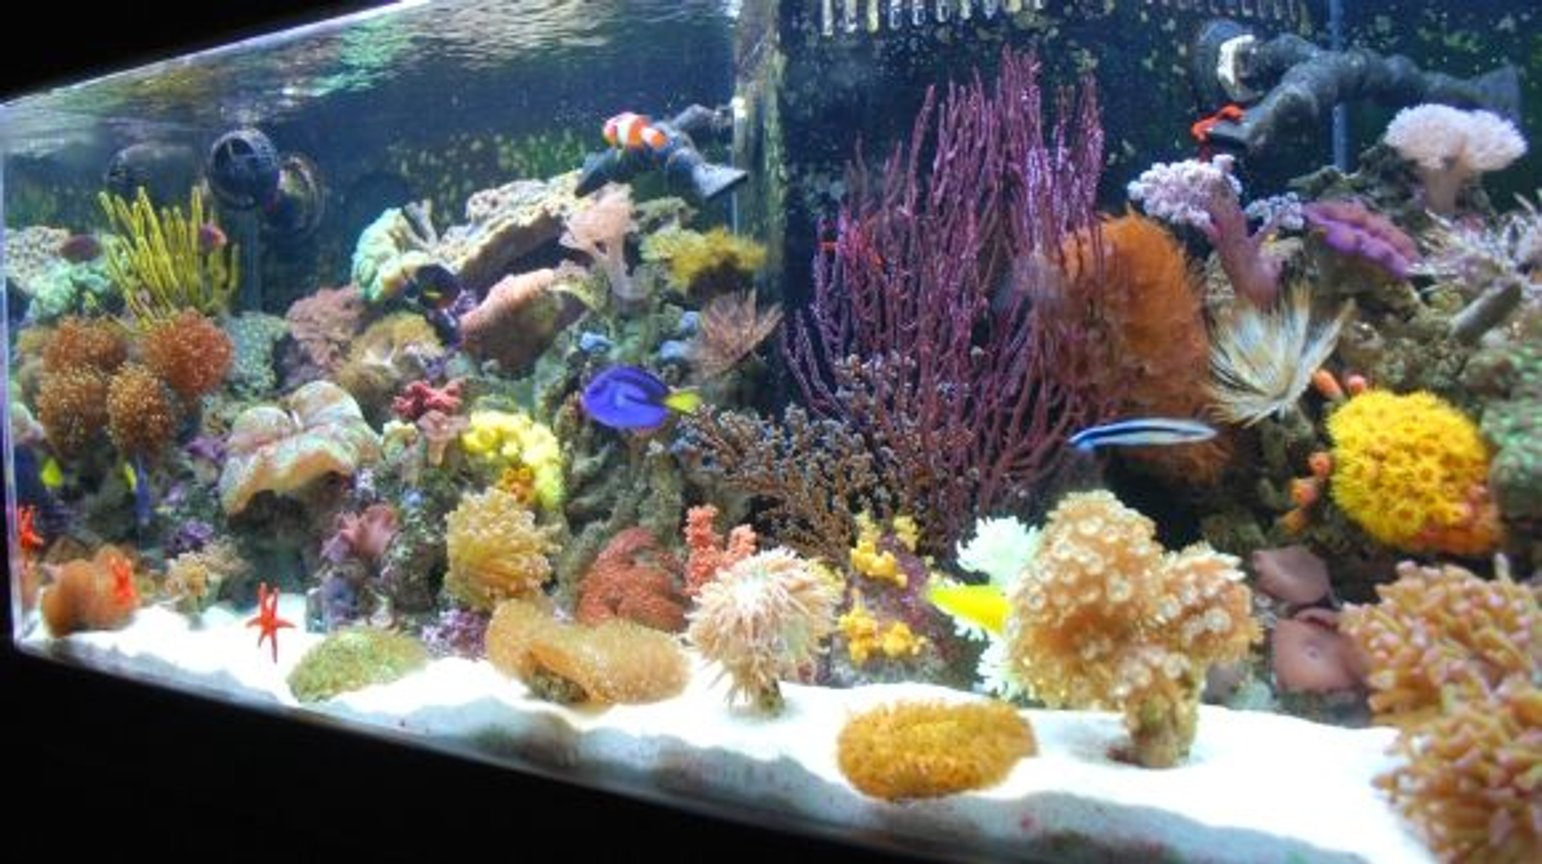 60 gallons reef tank (mostly live coral and fish) - Javier who has created this site has it rigged so you can't even vote on our pictures (Ryan - The Shepherds Reef Killer who built our tank has a tank posted which is NOT even his - we are done playing your third grade games) We are going to solicite the advertisers and make our own web site and do what we want on it so don't worry we'll be back ad # 1 again just like we were meant to be!!!!!!!!!!!!!!!!!!!!!!!!!!!!!!!!!!!!!) Every kind of fish you can think of that everyone says you can't keep together, we have in the tank --- Updated 7-24-08 - WE PURCHASED EVERYTHING IN OUR TANK FROM JEFF'S EXOTIC FISH IN COSTA MESA (714) 540-0880 THEY ARE VERY KNOWLEDGABLE AND CAN GET YOU STARTED EVEN IF YOU JUST WANT A LITTLE NANO TANK. THANKS GUYS!!!!